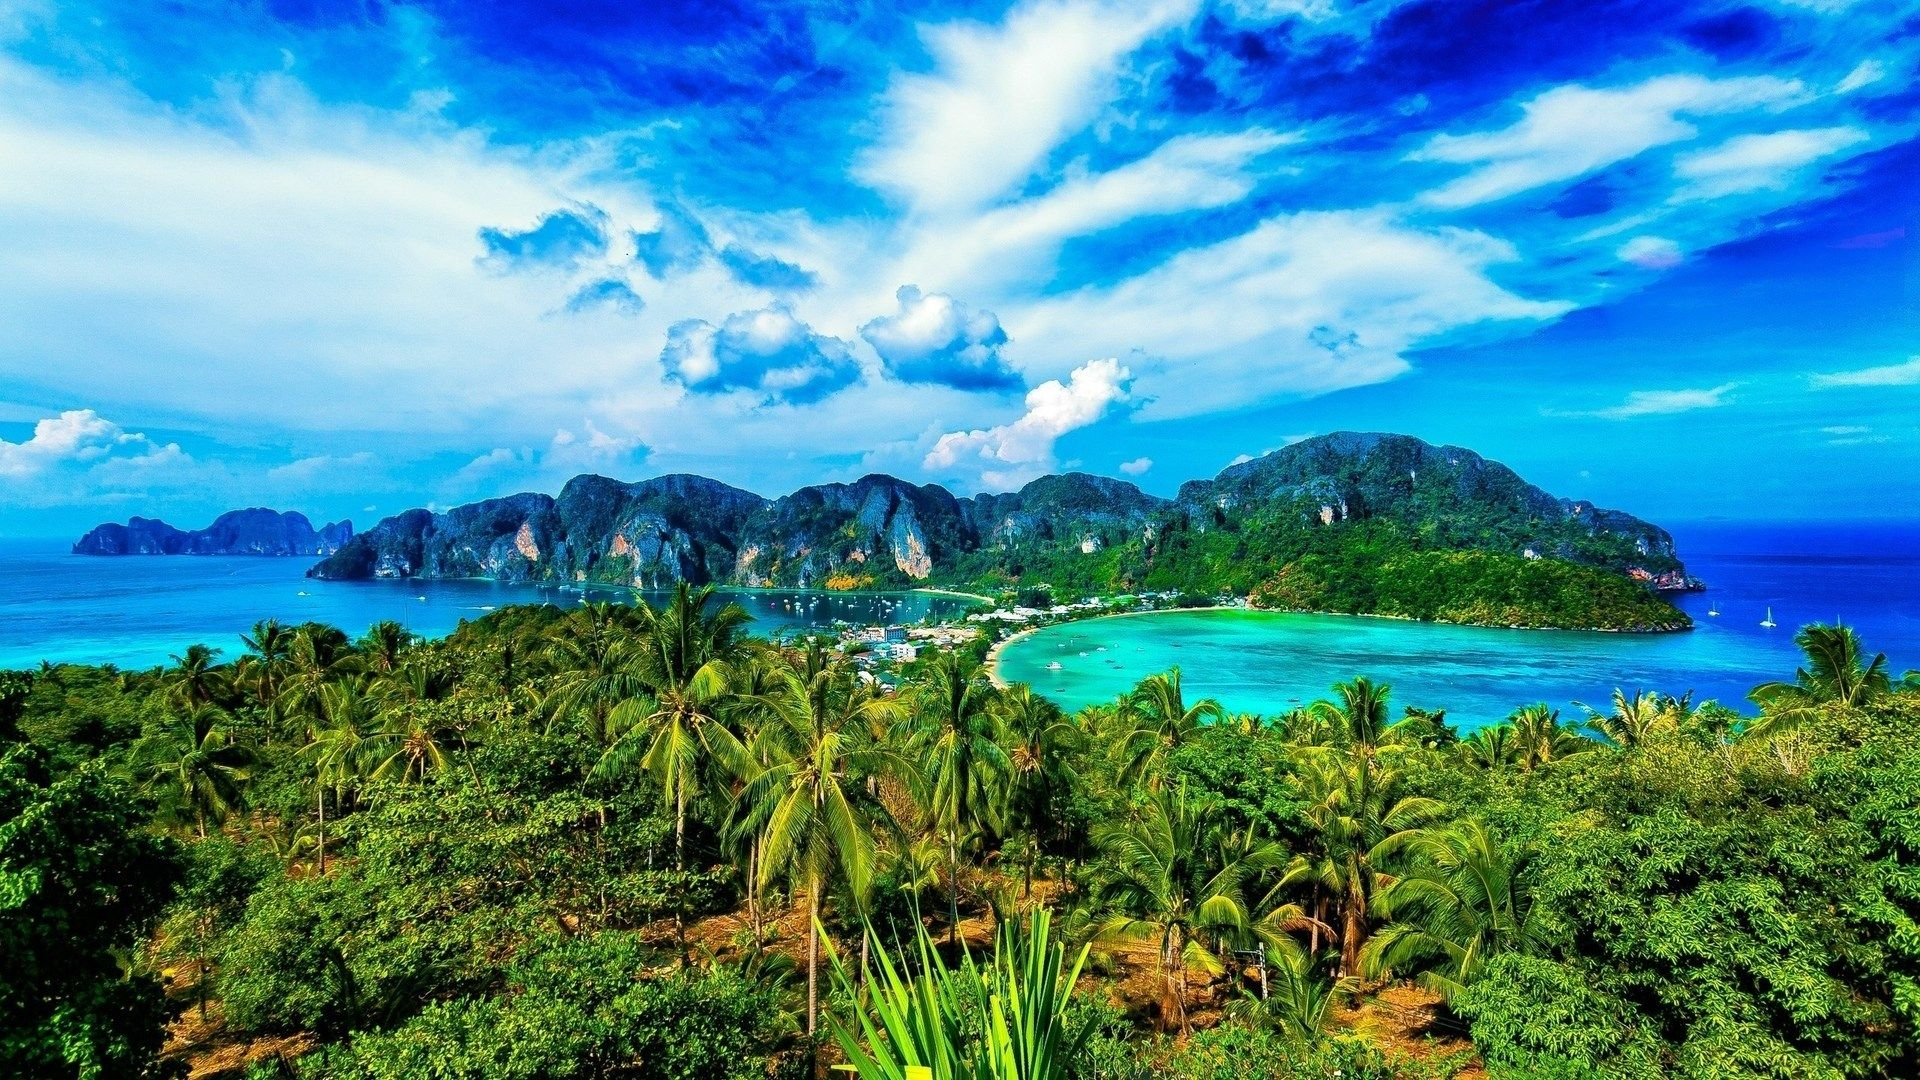 island pic - full hd wallpapers, photos - island category